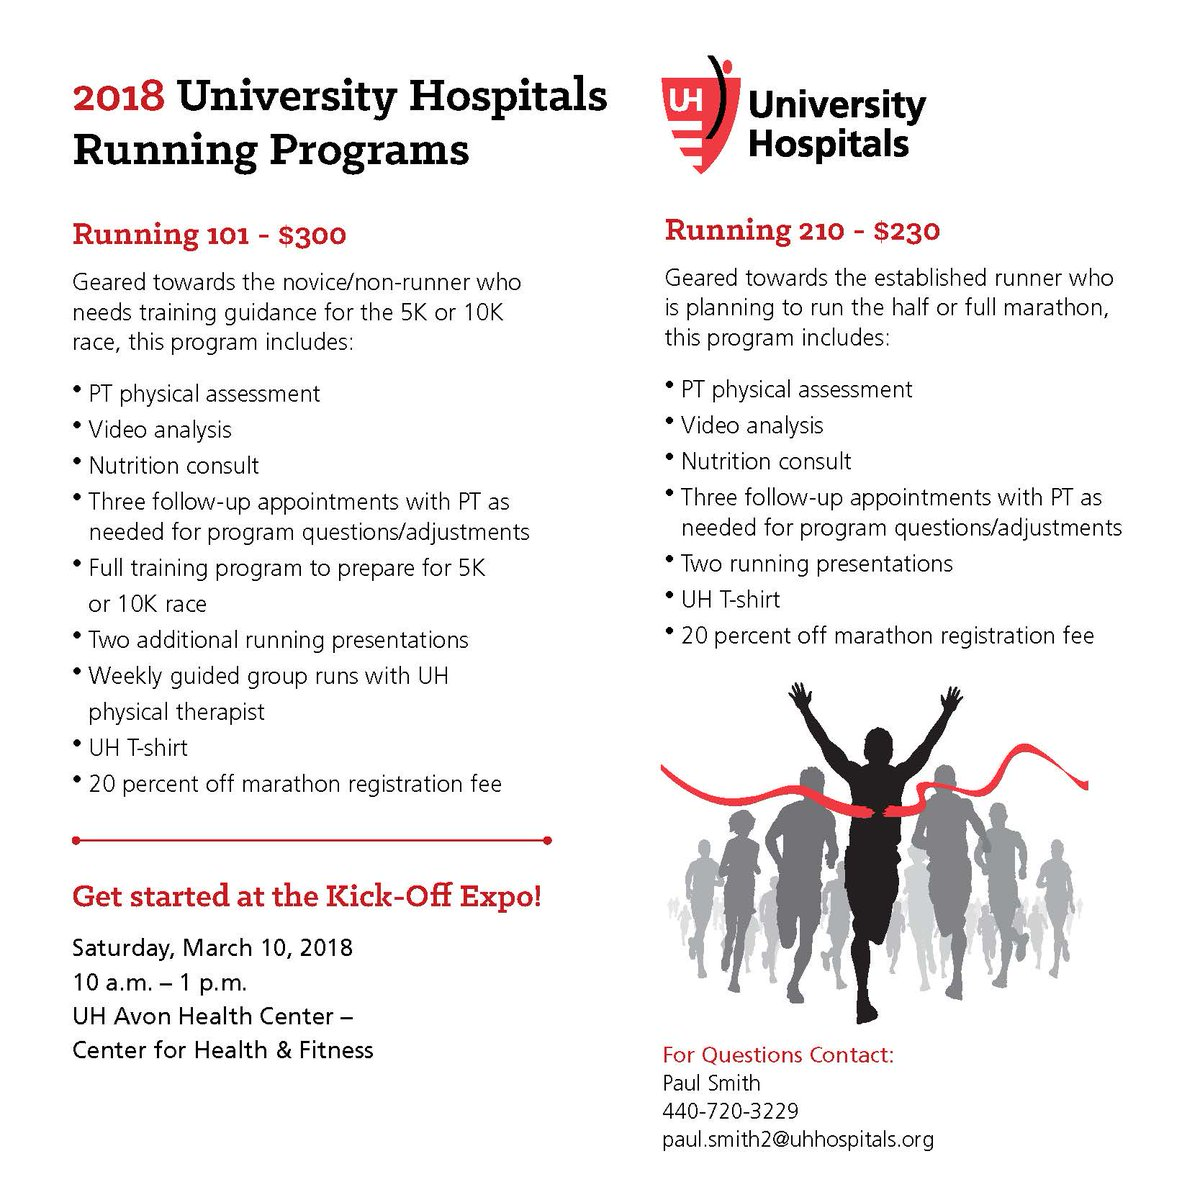 cleveland marathon on twitter introducing uhhospitals 2018 running programs whether you are training for a smaller race or gearing up for a half or full